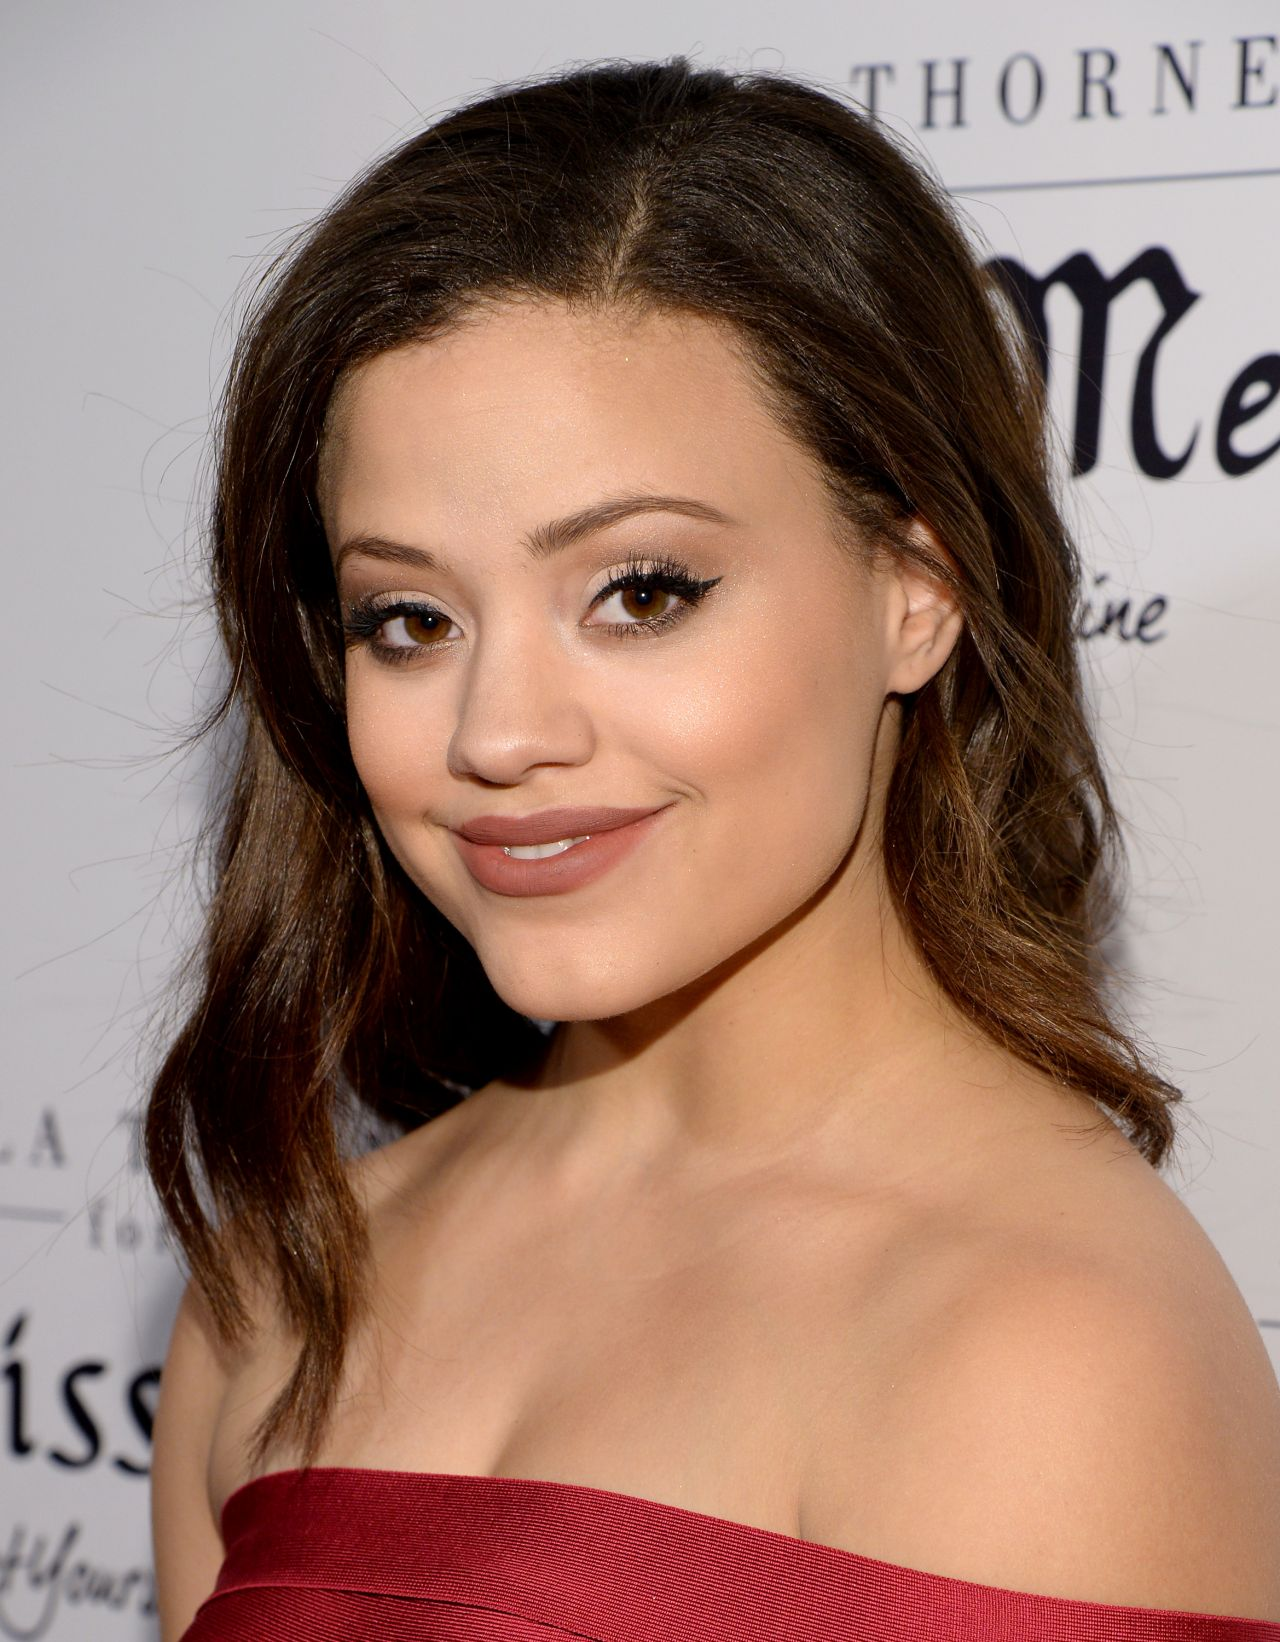 The 21-year old daughter of father (?) and mother(?), 155 cm tall Sarah Jeffery in 2017 photo